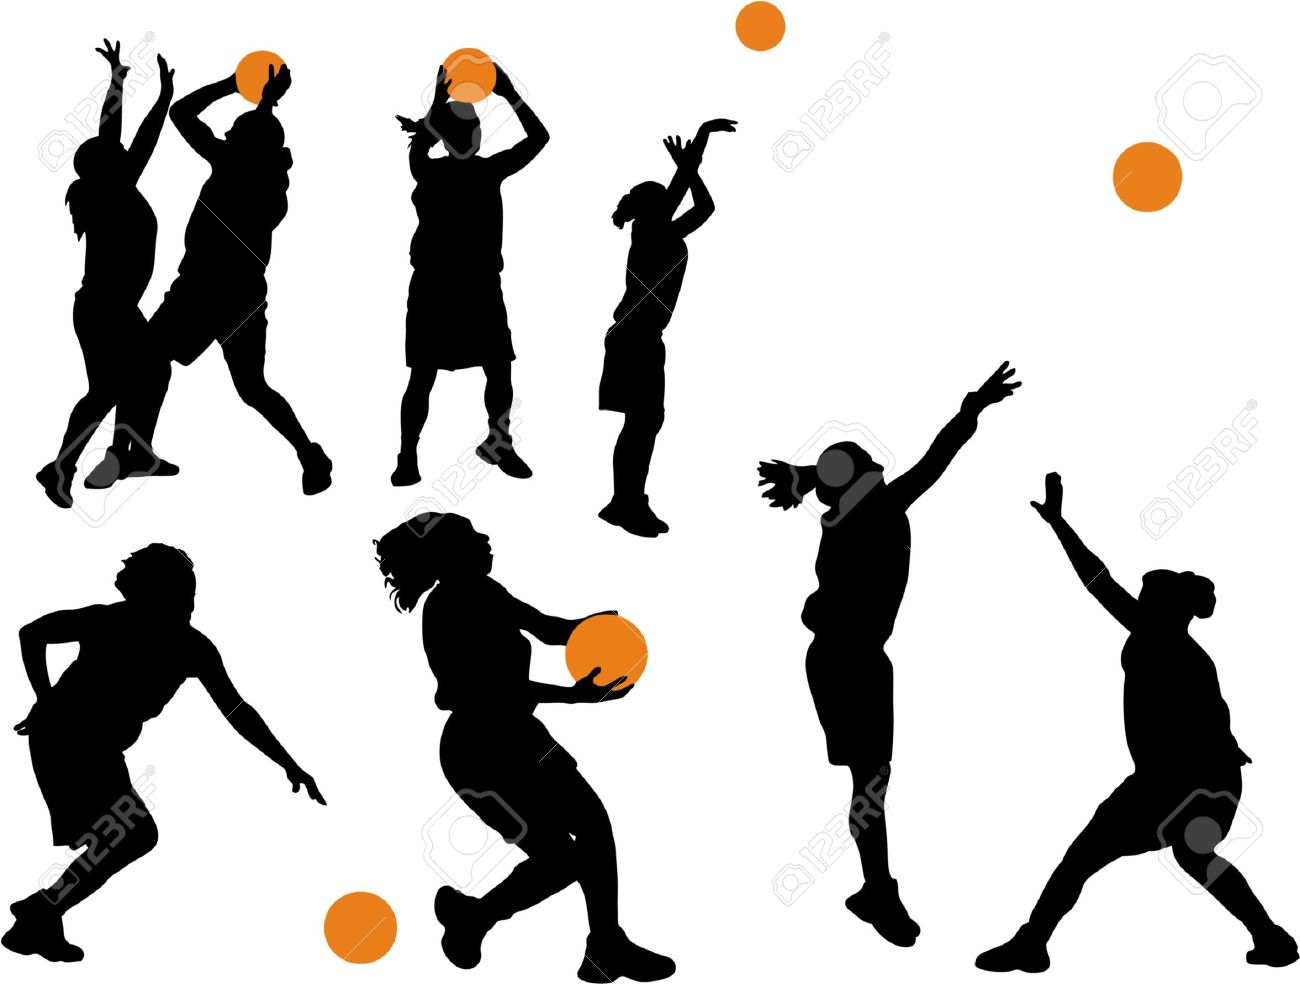 Women S Basketball Vector Silhouettes Royalty Free Cliparts Vectors